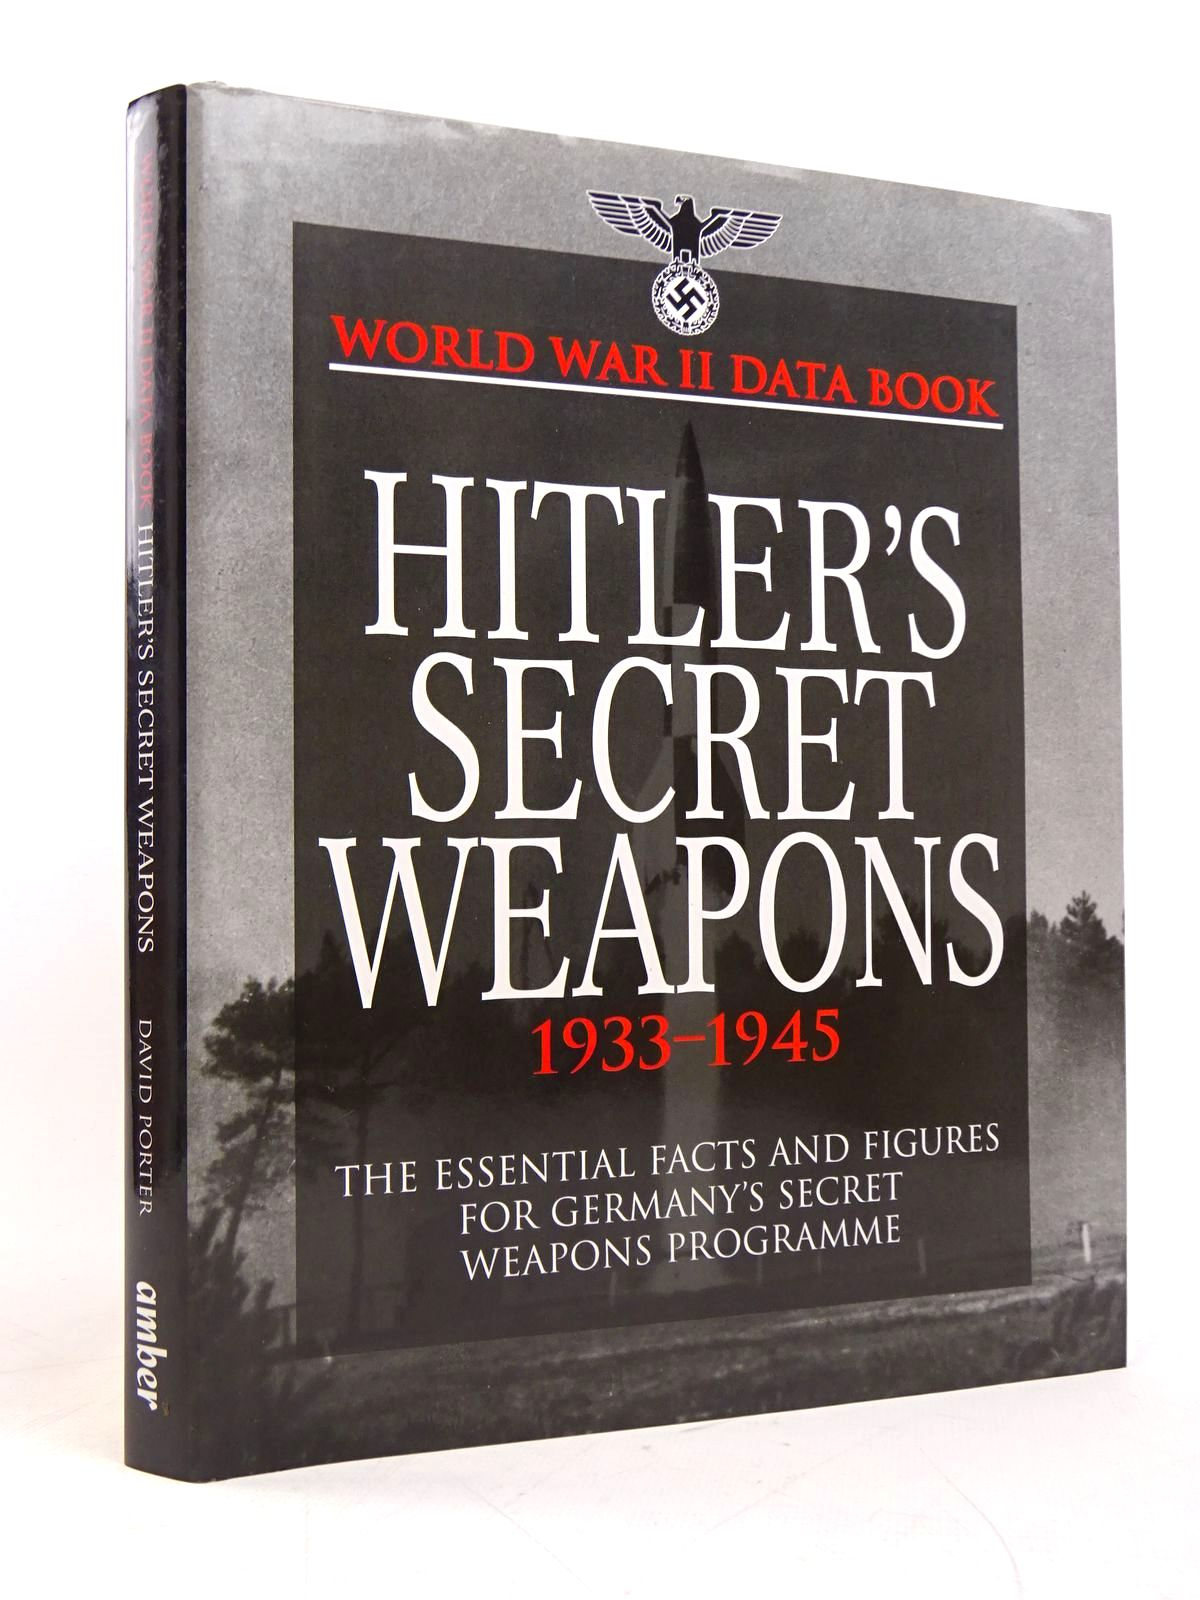 Photo of WORLD WAR II DATA BOOK: HITLER'S SECRET WEAPONS 1933-1945 written by Porter, David published by Amber Books (STOCK CODE: 1817915)  for sale by Stella & Rose's Books